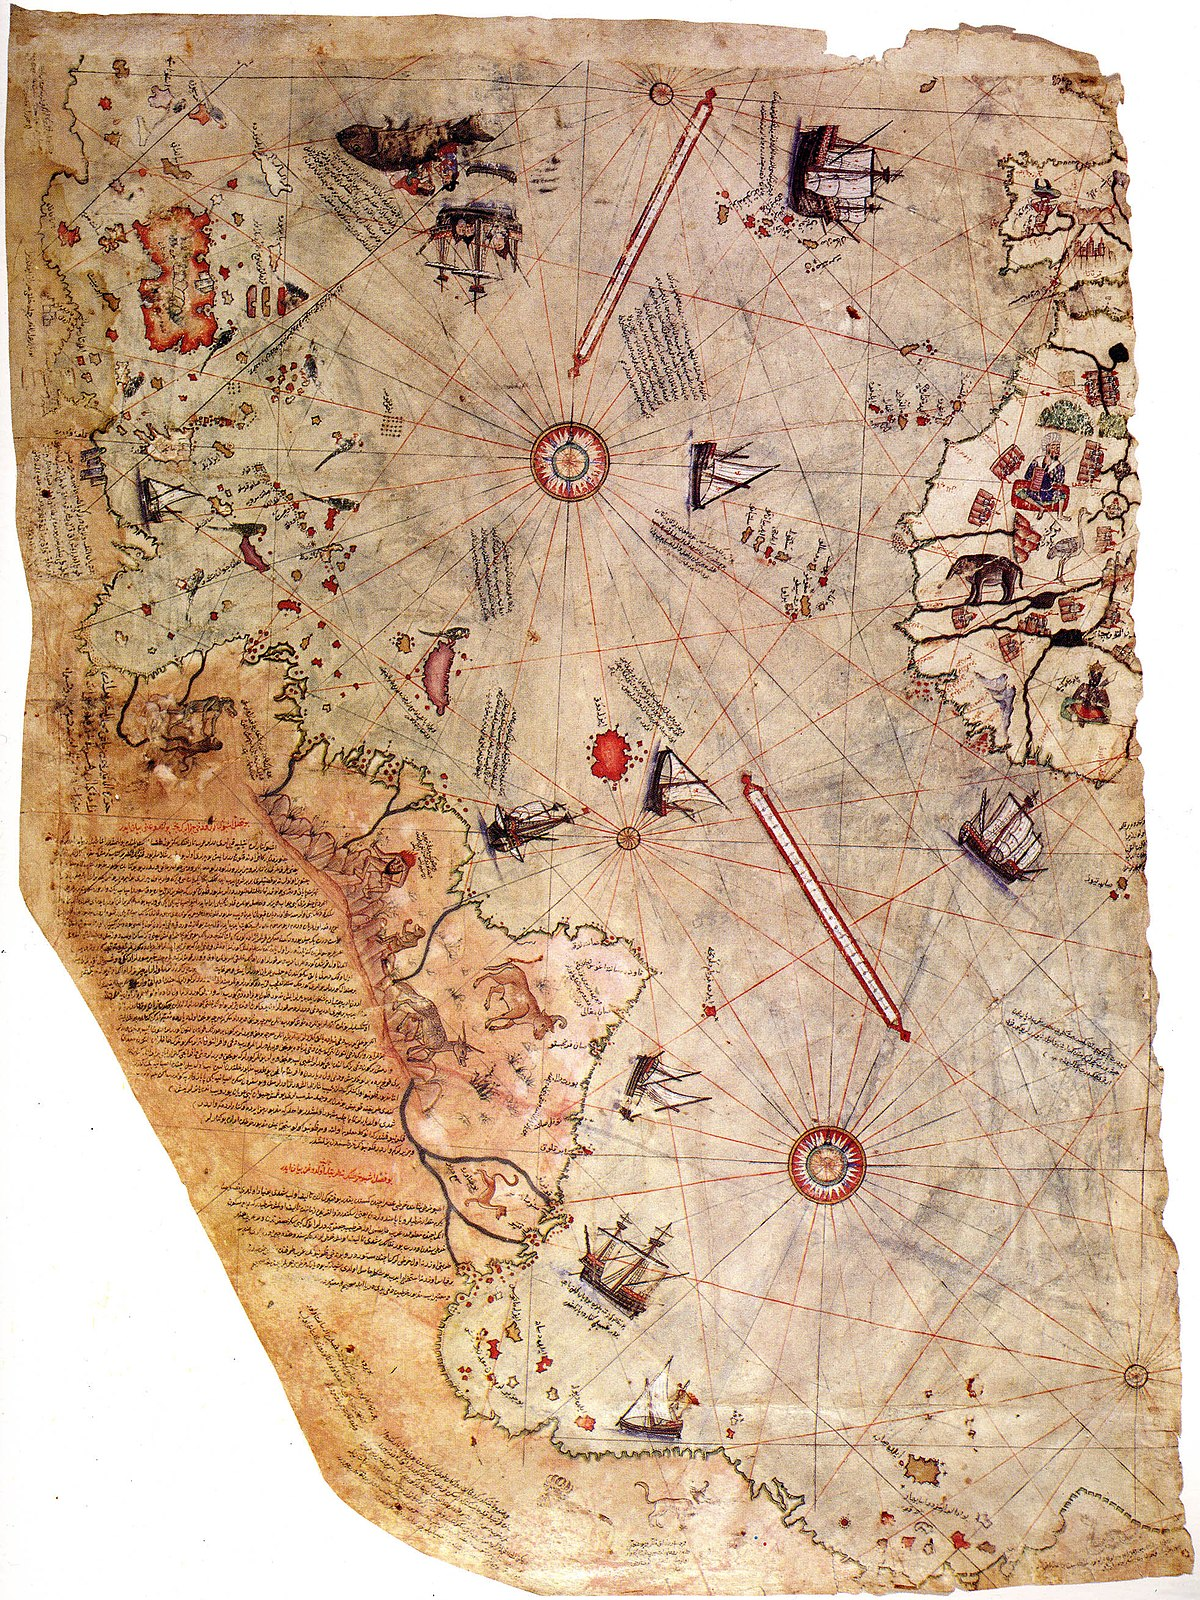 Knights Templar Treasure Map